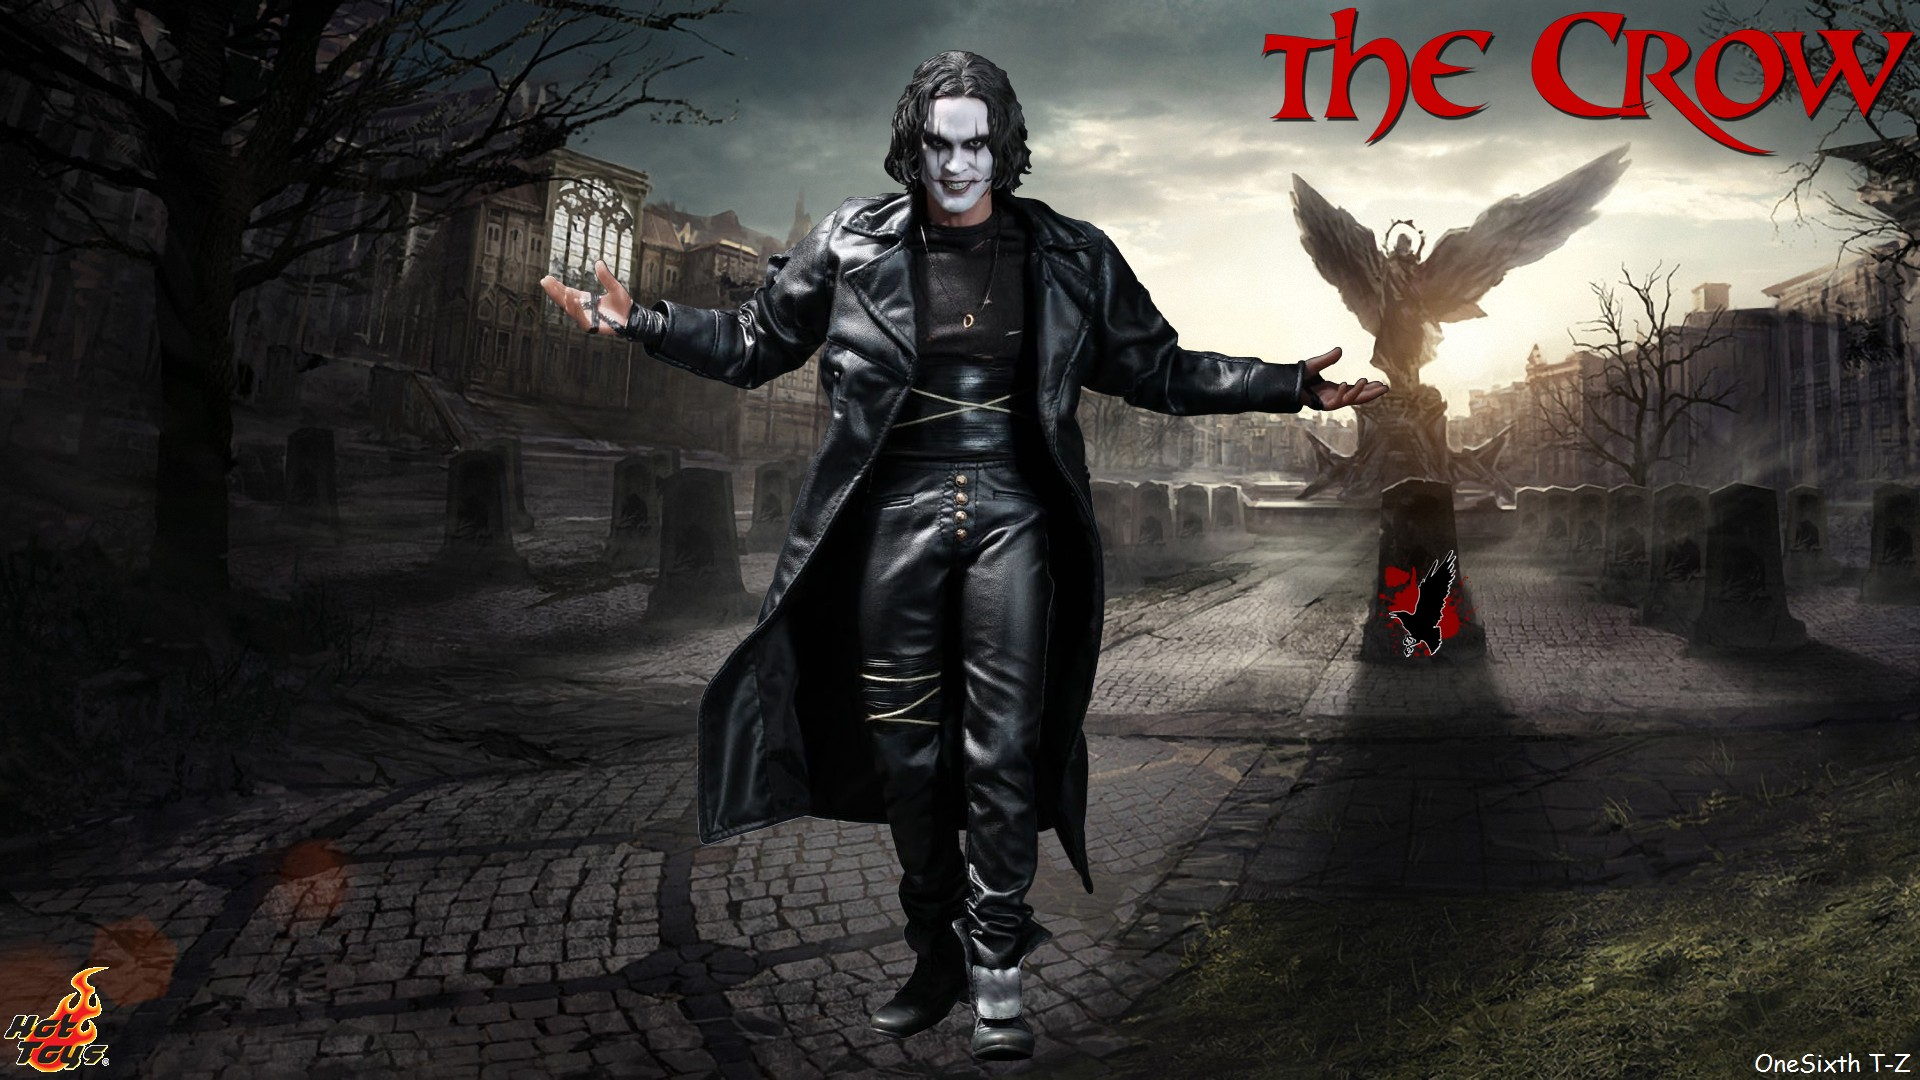 Free Download Hot Toys The Crow Hd Wallpaper By Onesixth T Z 1920x1080 For Your Desktop Mobile Tablet Explore 44 Crow Hd Wallpaper Sheryl Crow Wallpapers Crow Wallpaper For